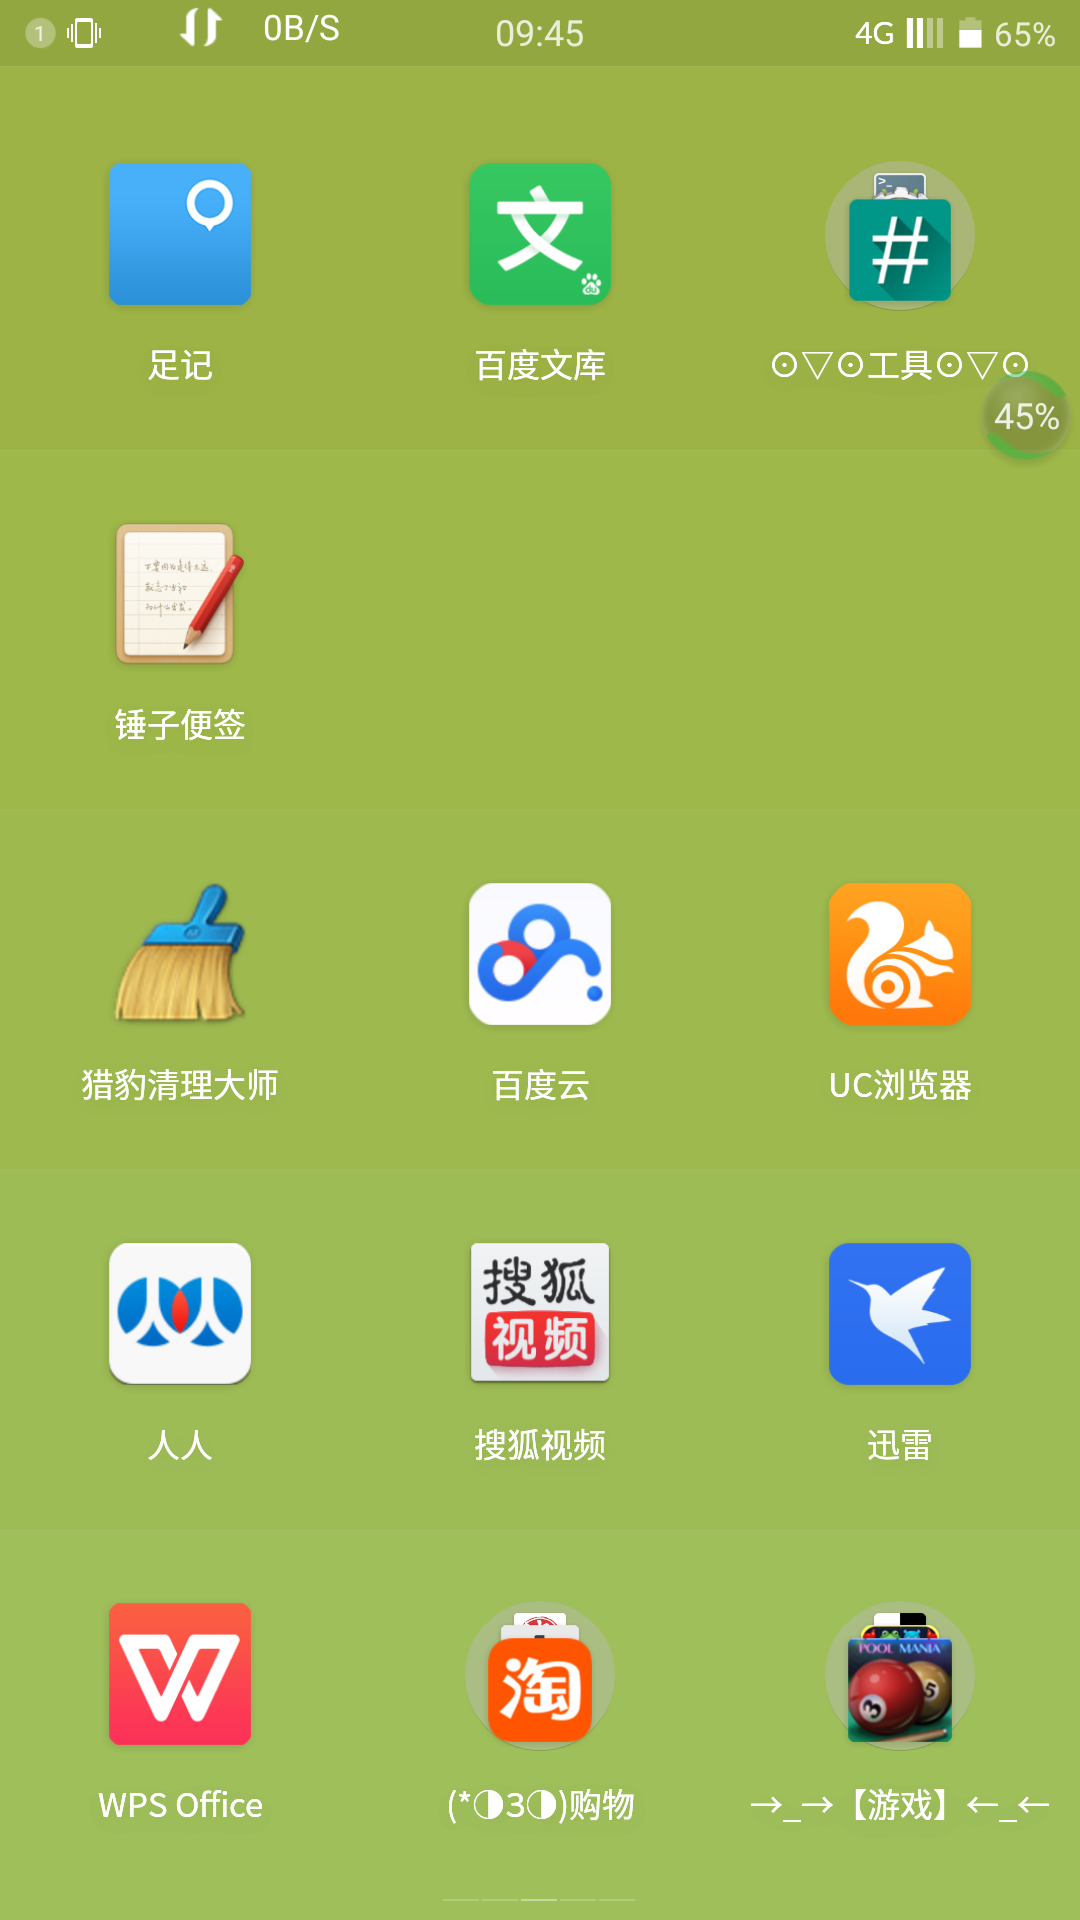 Screenshot_2015-06-10-09-45-58.png